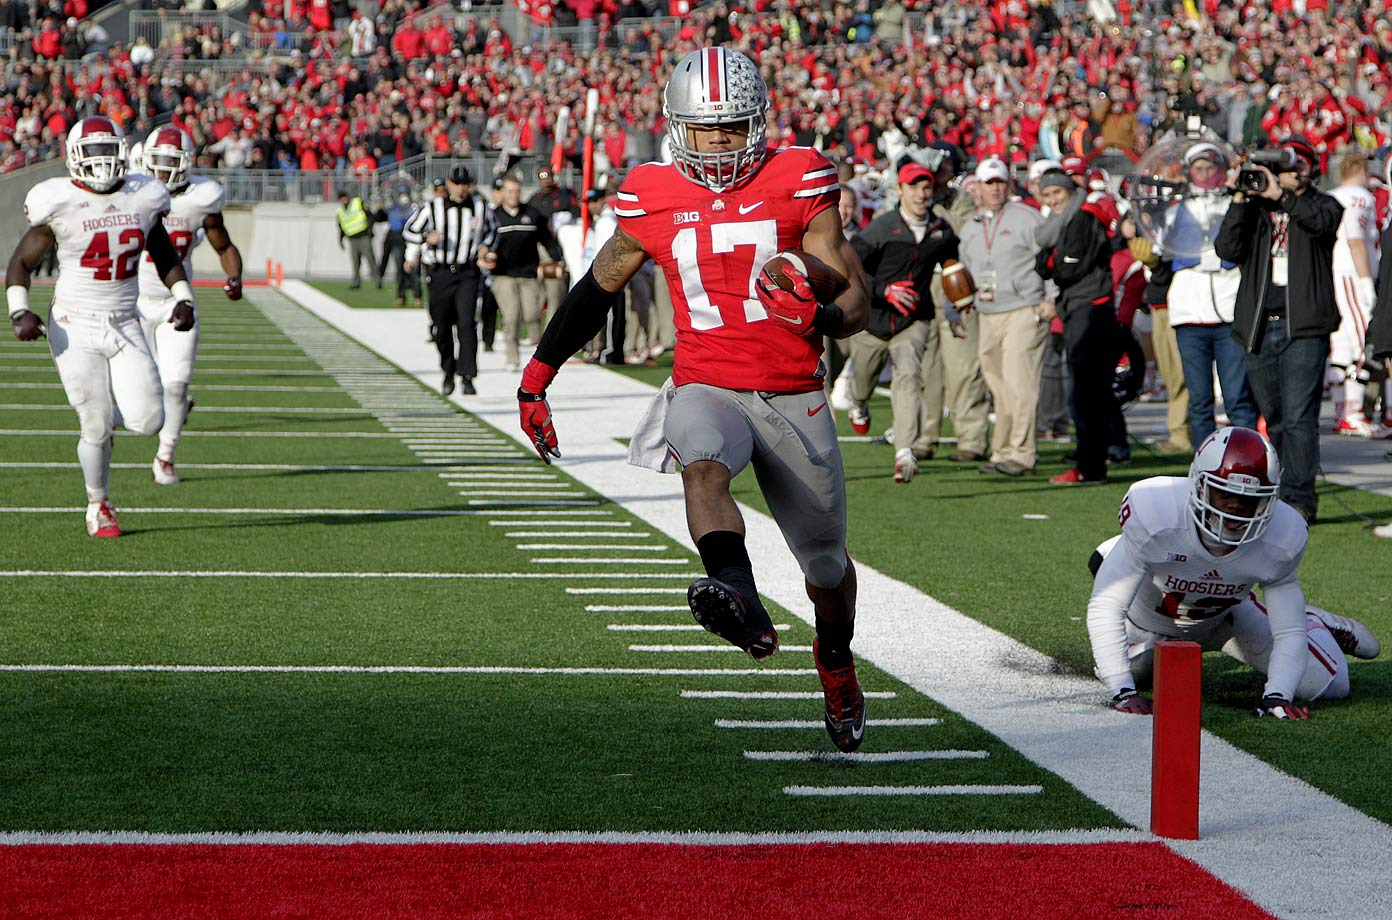 Tevin Coleman (228 yards rushing and three touchdowns) and the Hoosiers gave the Buckeyes all they could handle and might have pulled the stunning upset if not for Jalin Marshall. Ohio State's redshirt freshman score four straight second-half touchdowns, including a 54-yard punt return late in the third quarter that gave the Buckeyes the lead for good.